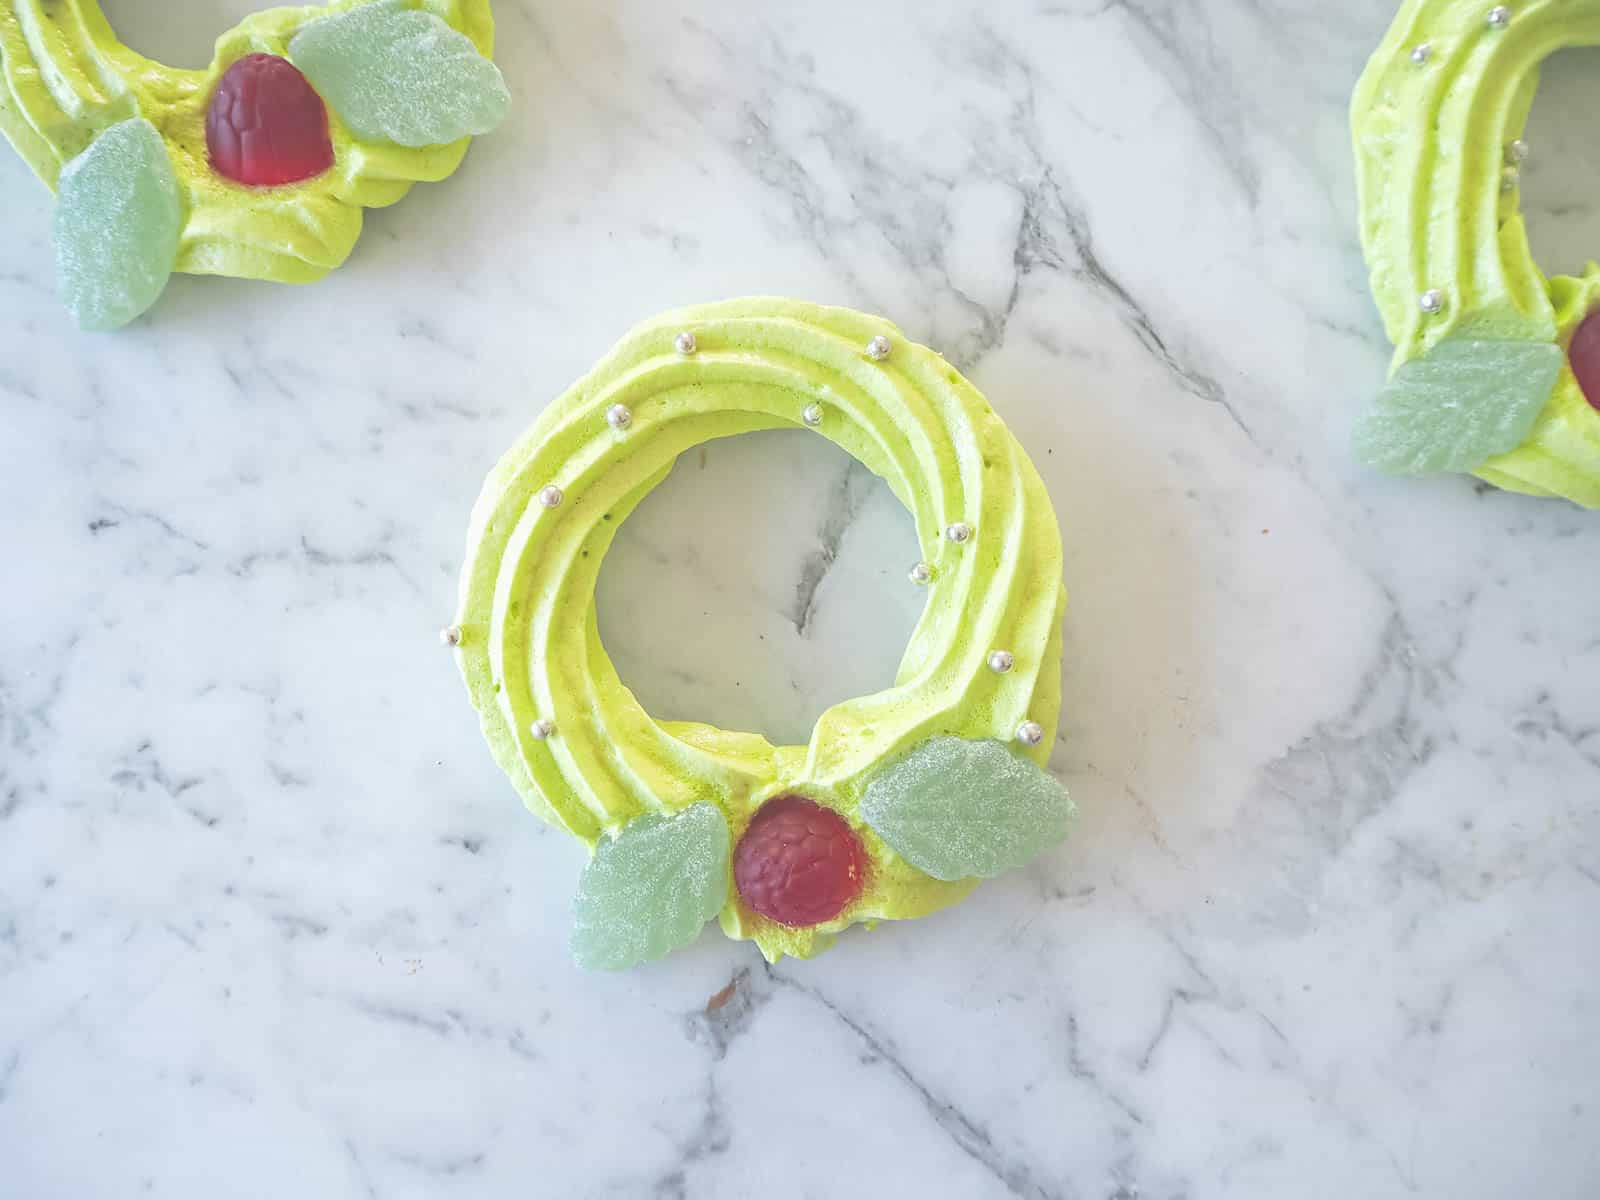 Mini meringue wreaths decorated with lollies on a marble board.